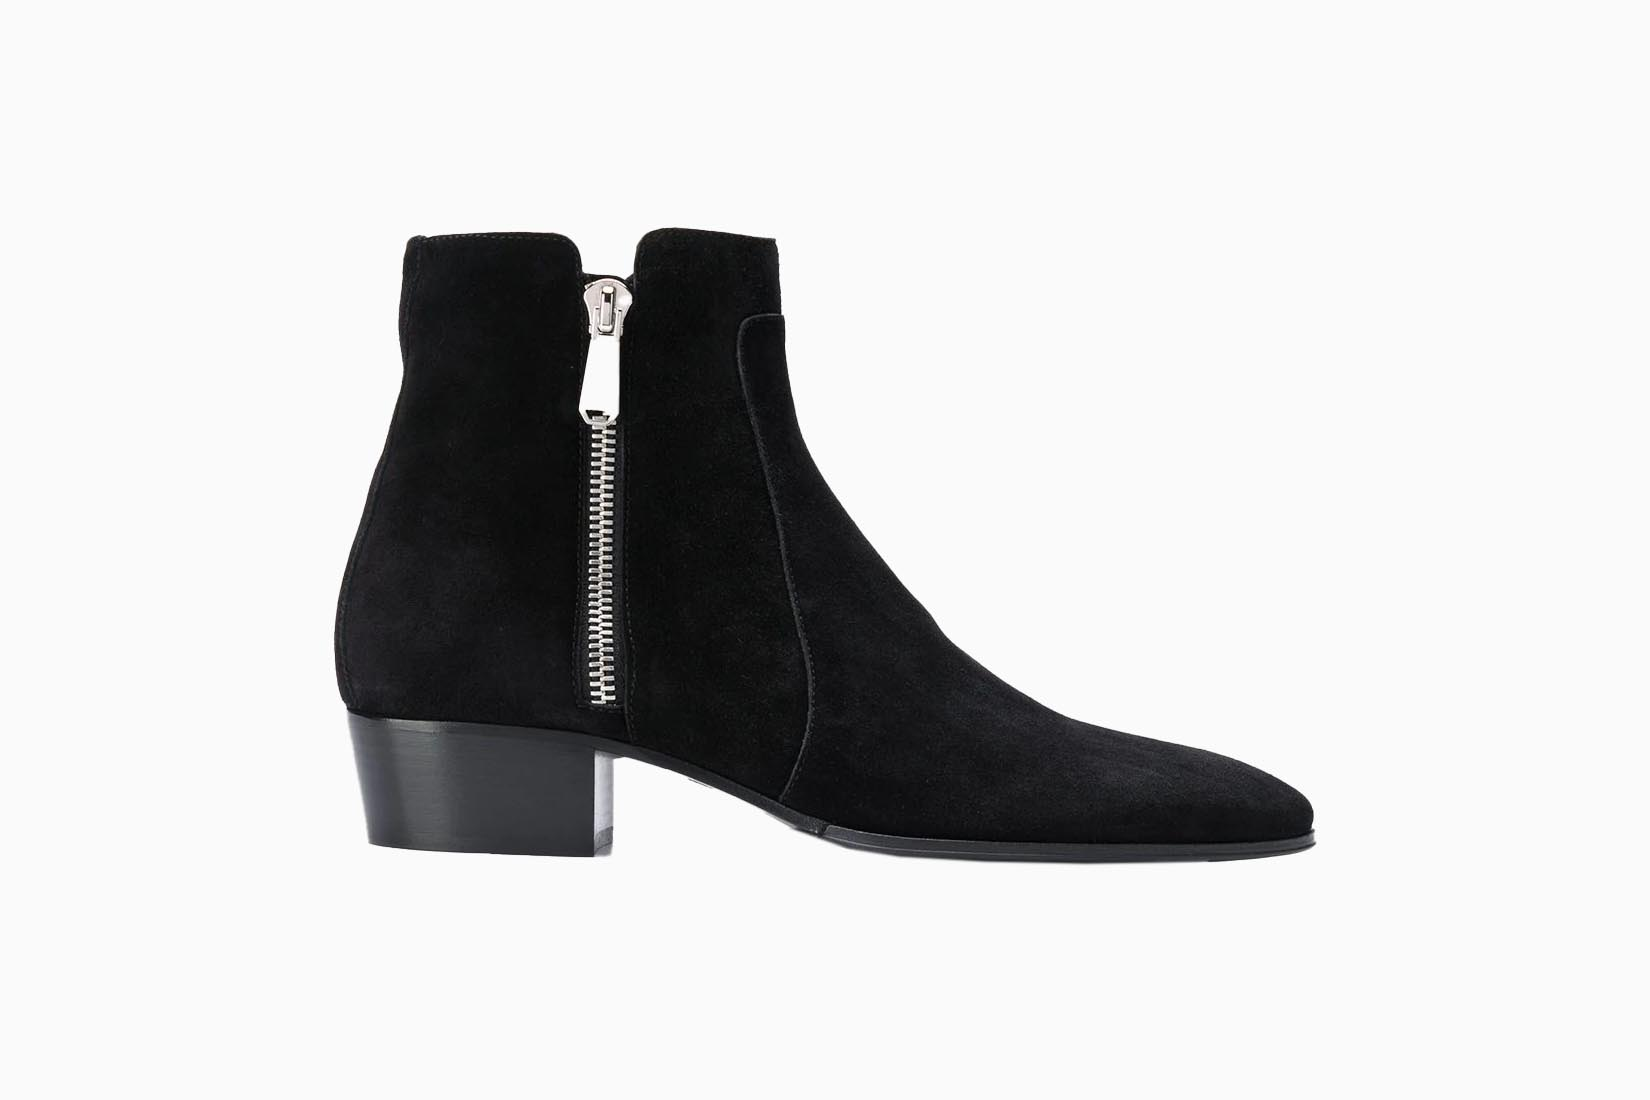 best boots men balmain suede ankle boots review Luxe Digital